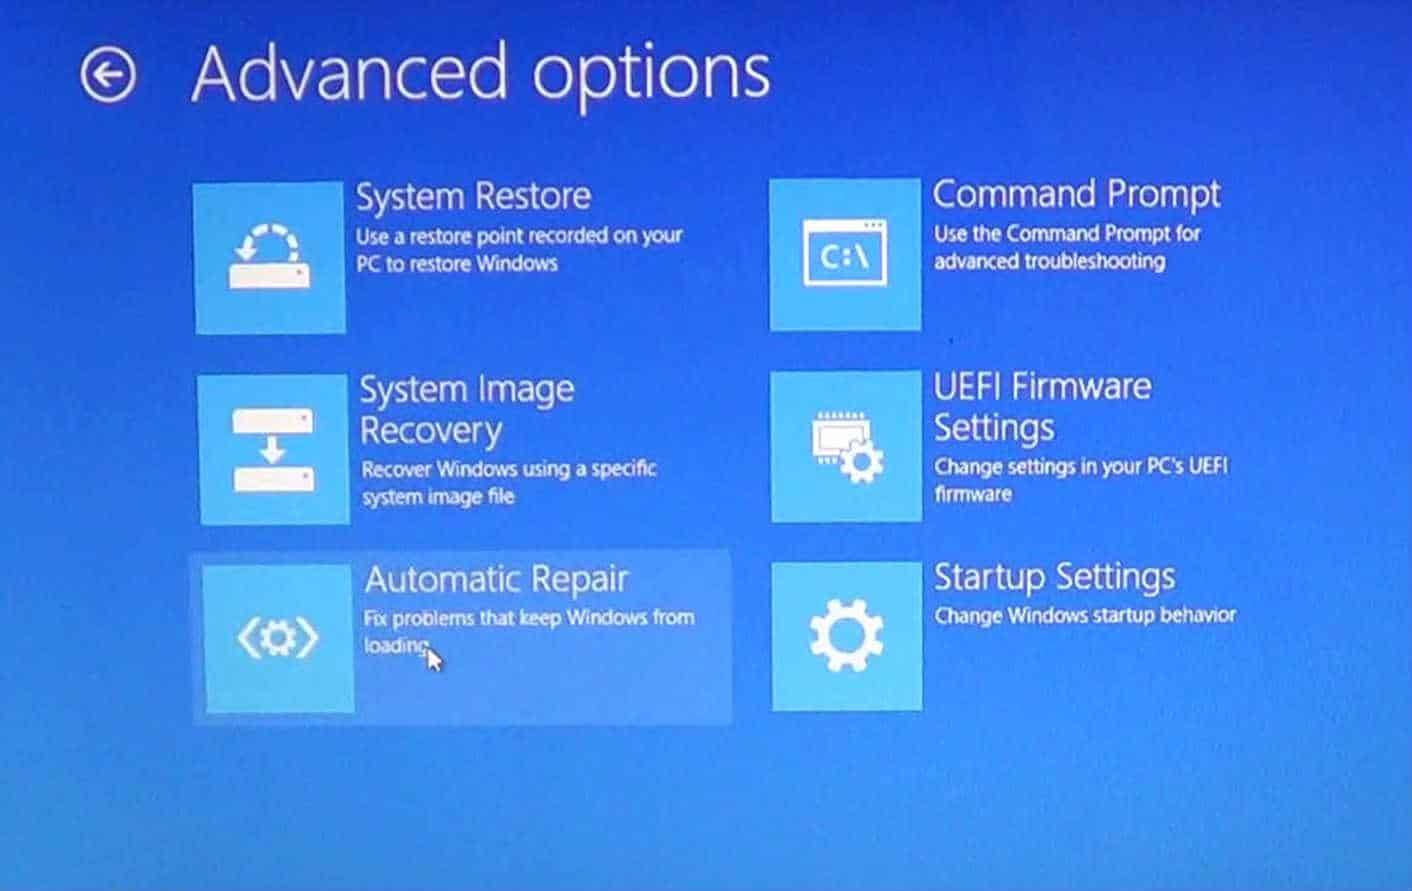 How to fix Windows 8 Infinite Startup Repair/Recovery Loop